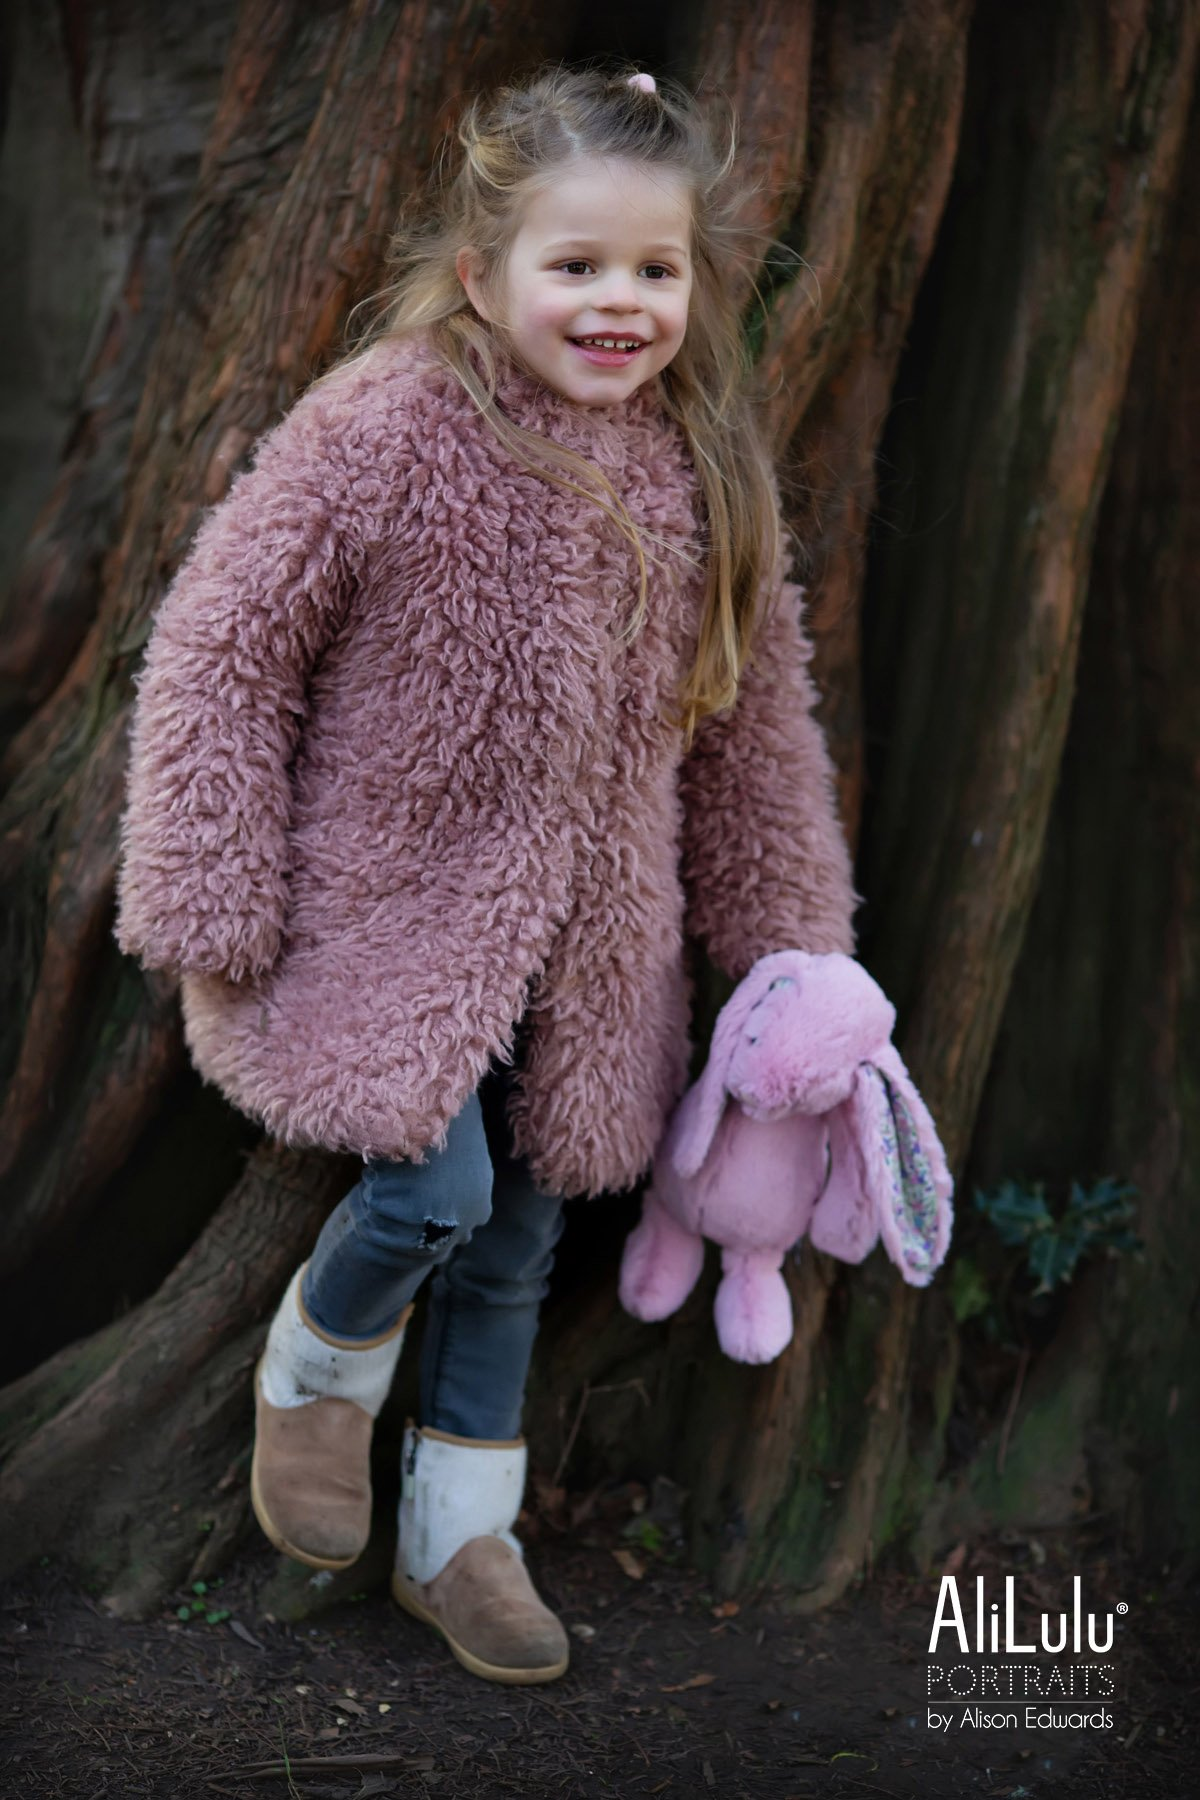 young girl laughing holding bunny teddy in park